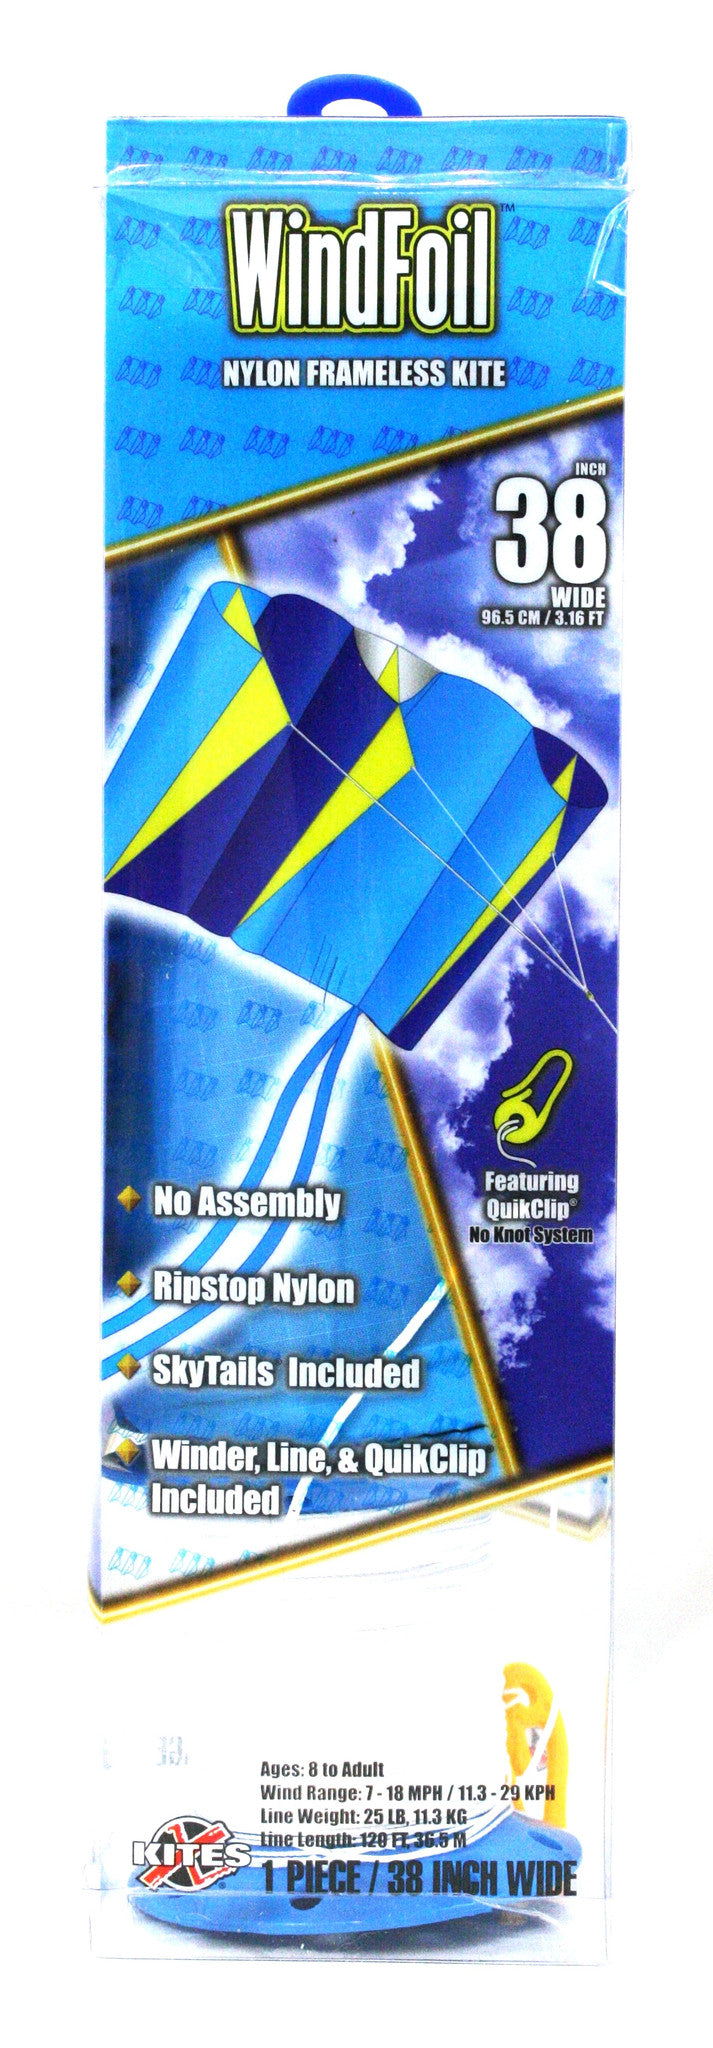 "38"" Windfoil Frameless Ripstop Nylon Kite by X-Kites - Blue Ice - Off The Wall Toys and Gifts"